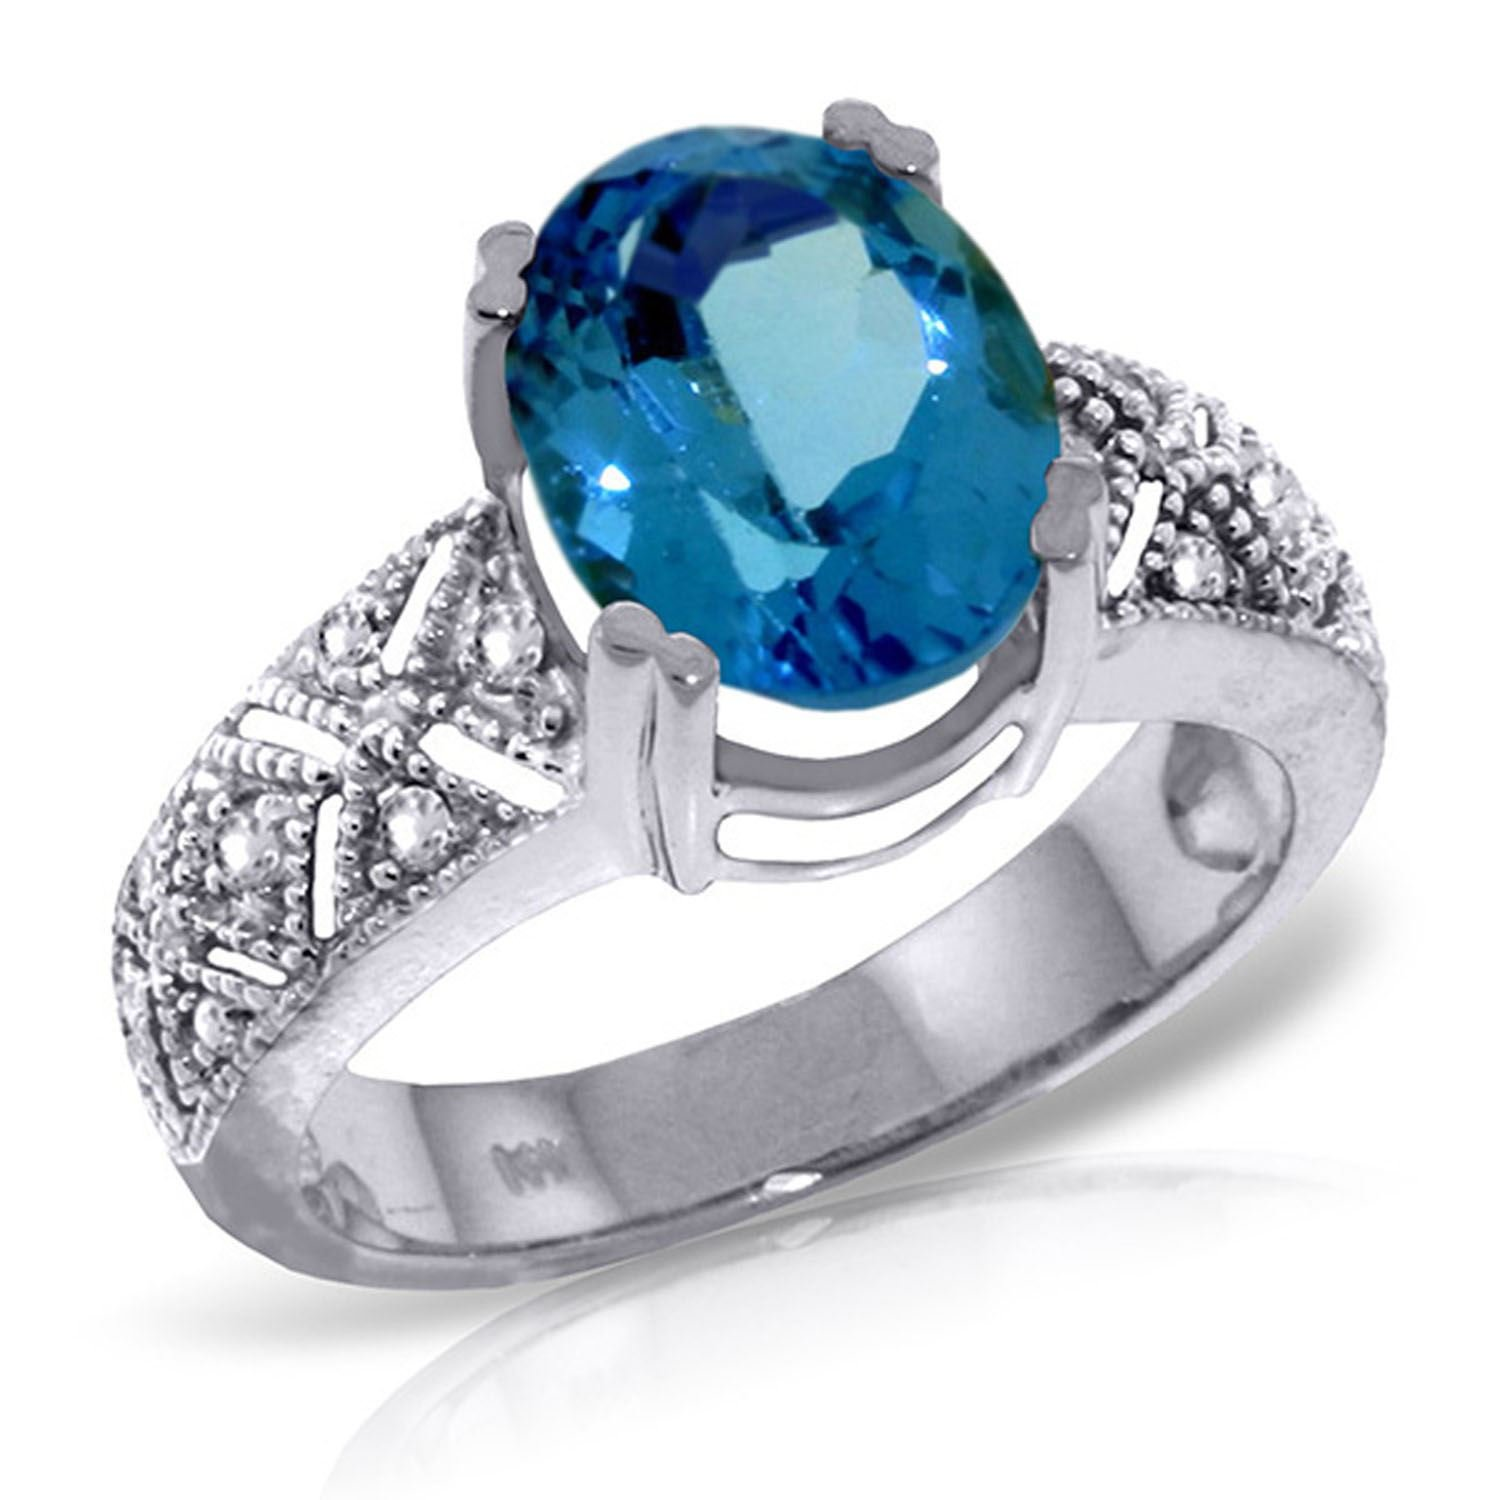 ALARRI 3.2 Carat 14K Solid White Gold Live To Love Blue Topaz Diamond Ring With Ring Size 6.5